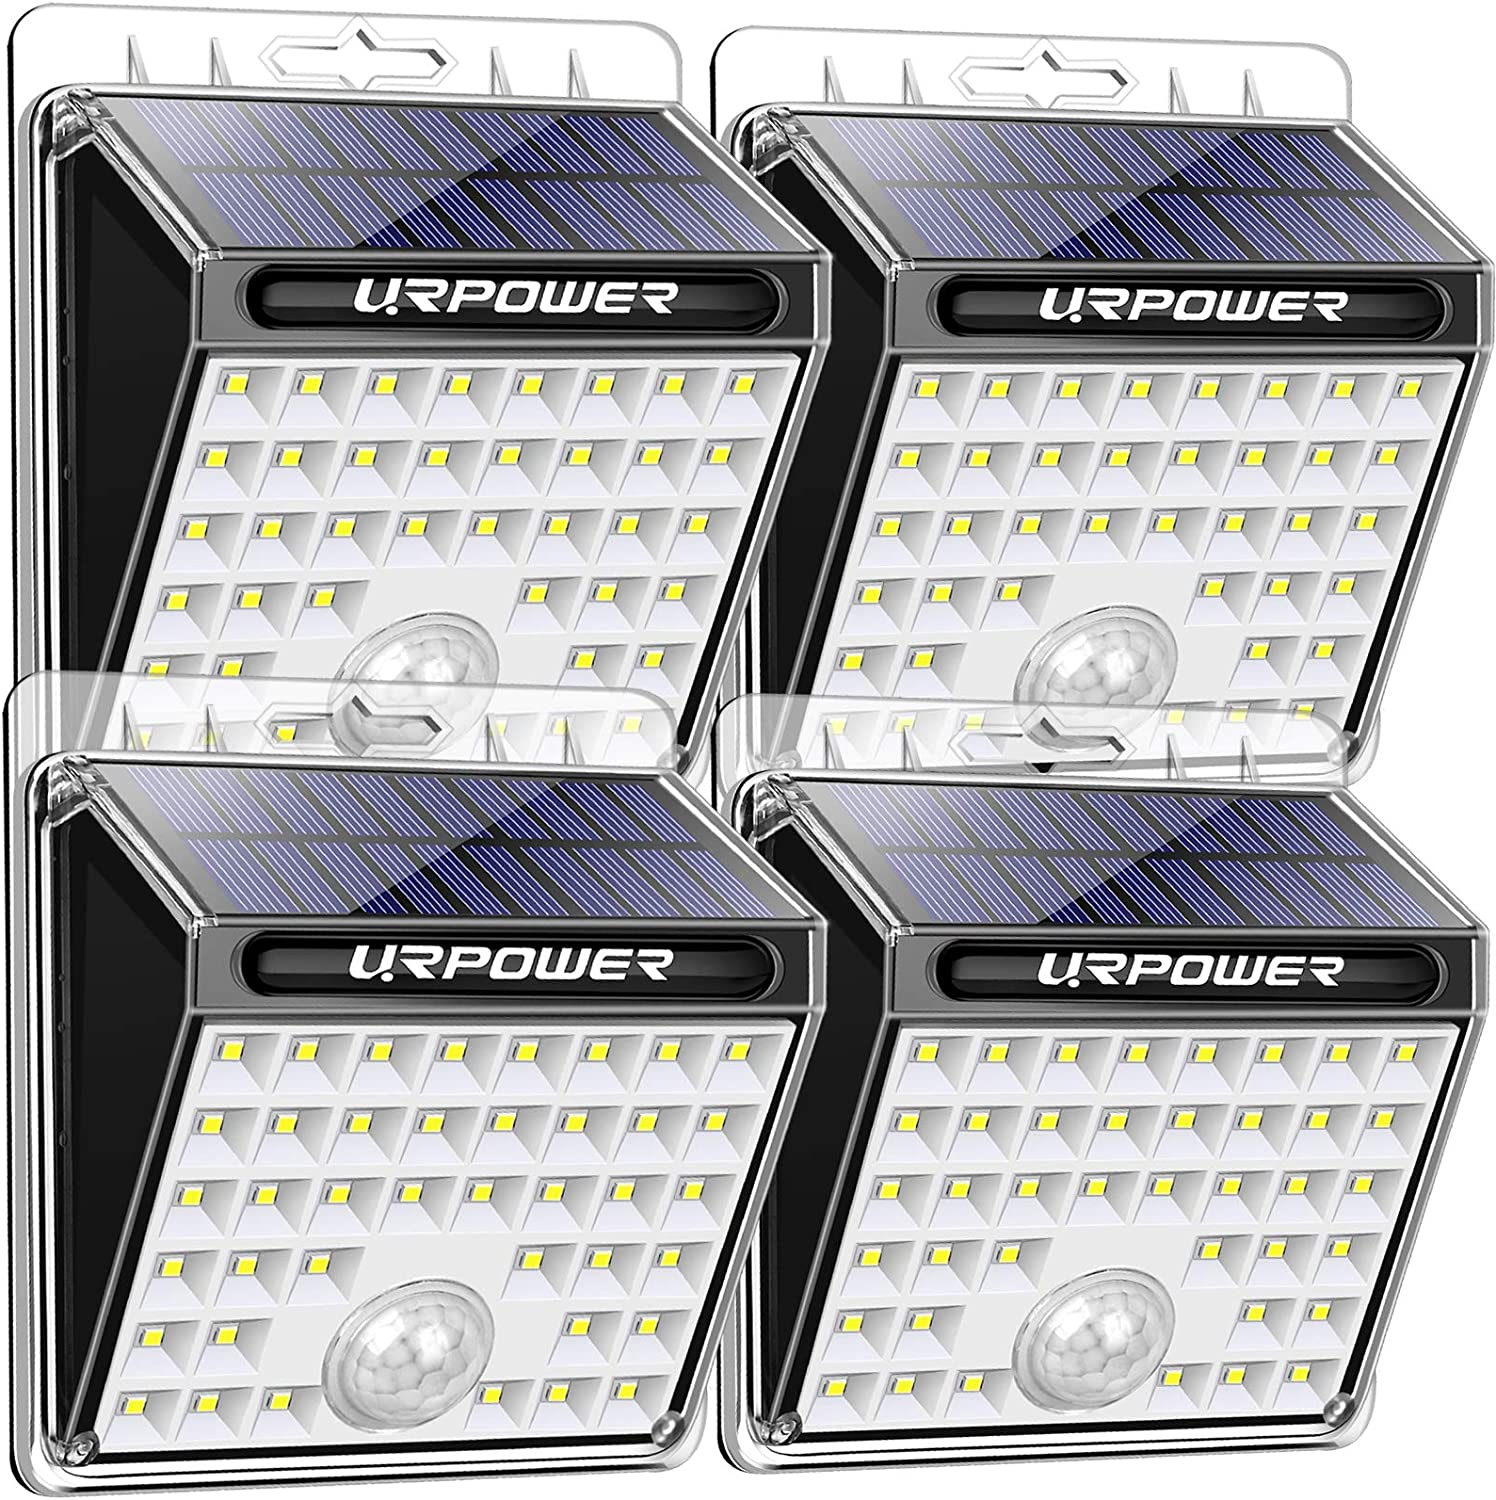 URPOWER 40 LED Solar Lights Outdoor, Solar Motion Sensor Security Lights IP65 Waterproof Solar Powered Flood Lights Motion Activated Auto ON/Off Wall Lights for Front Door, Backyard, Garage (4 Pack)